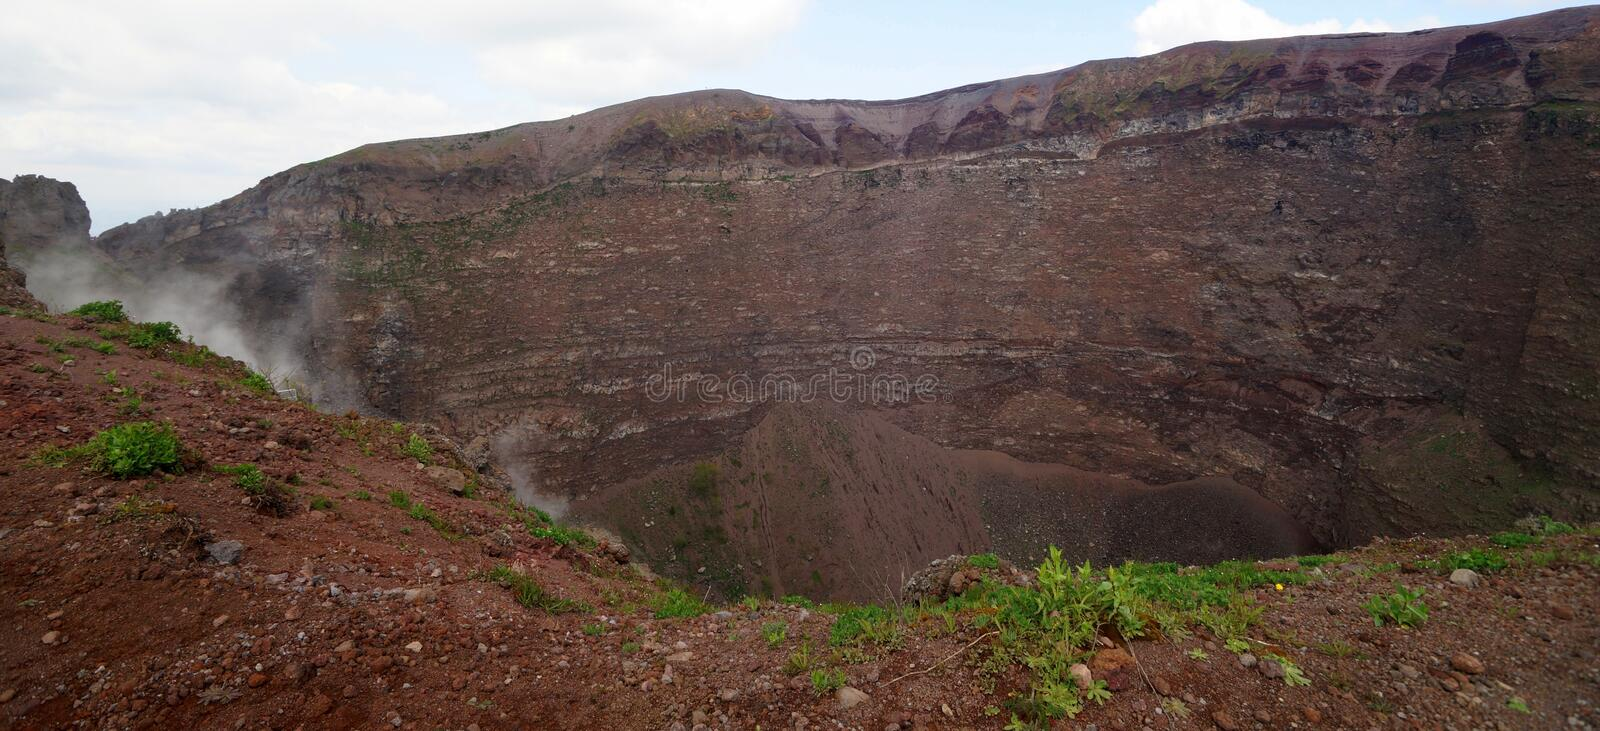 Crater of Mount Vesuvius, Italy. The crater of Mount Vesuvius which erupted in AD 79 burying the Ancient Roman cities of Pompeii and Herculaneum royalty free stock photos